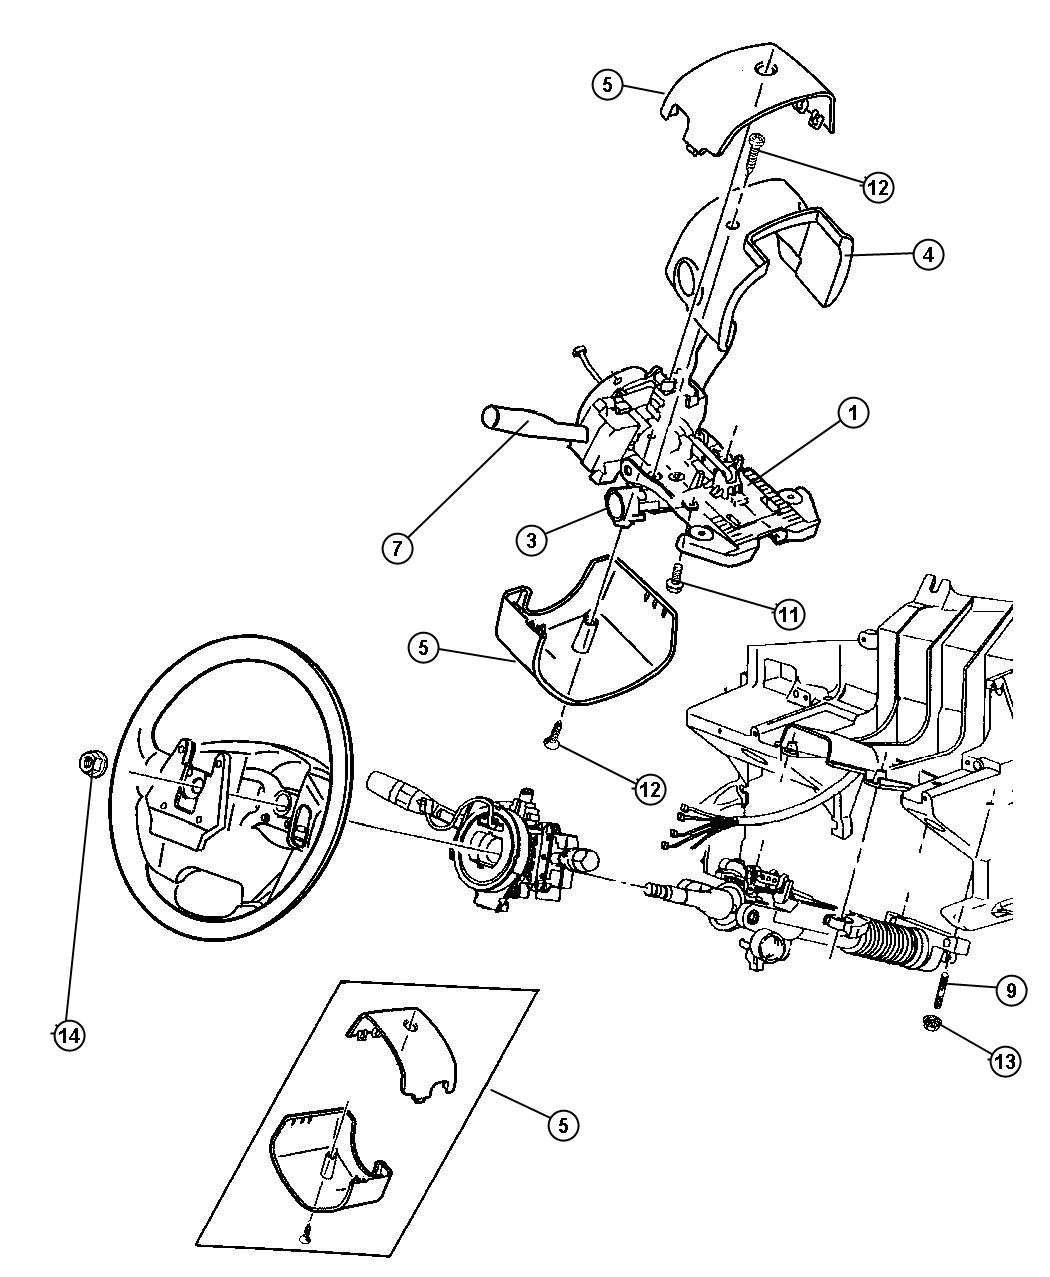 jeep wrangler steering column diagram 5 pin mini usb wiring yj wheel free engine image